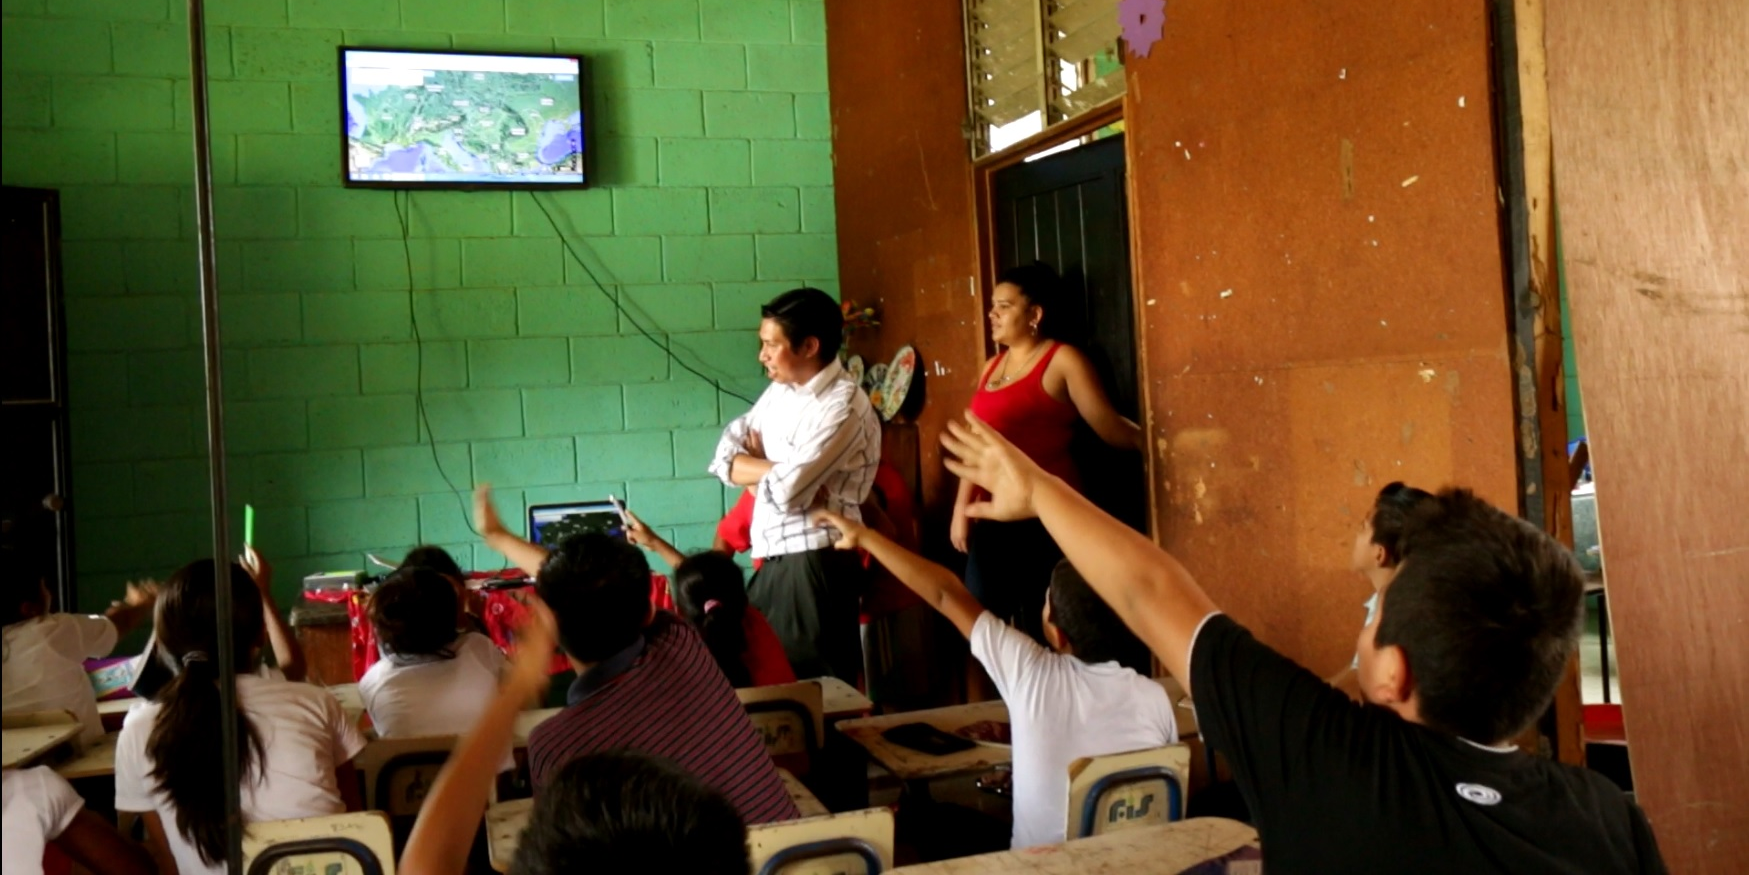 Cesar teaching a model Geography class. The students are gesturing where to pan and zoom the map to get to a particular landmark.